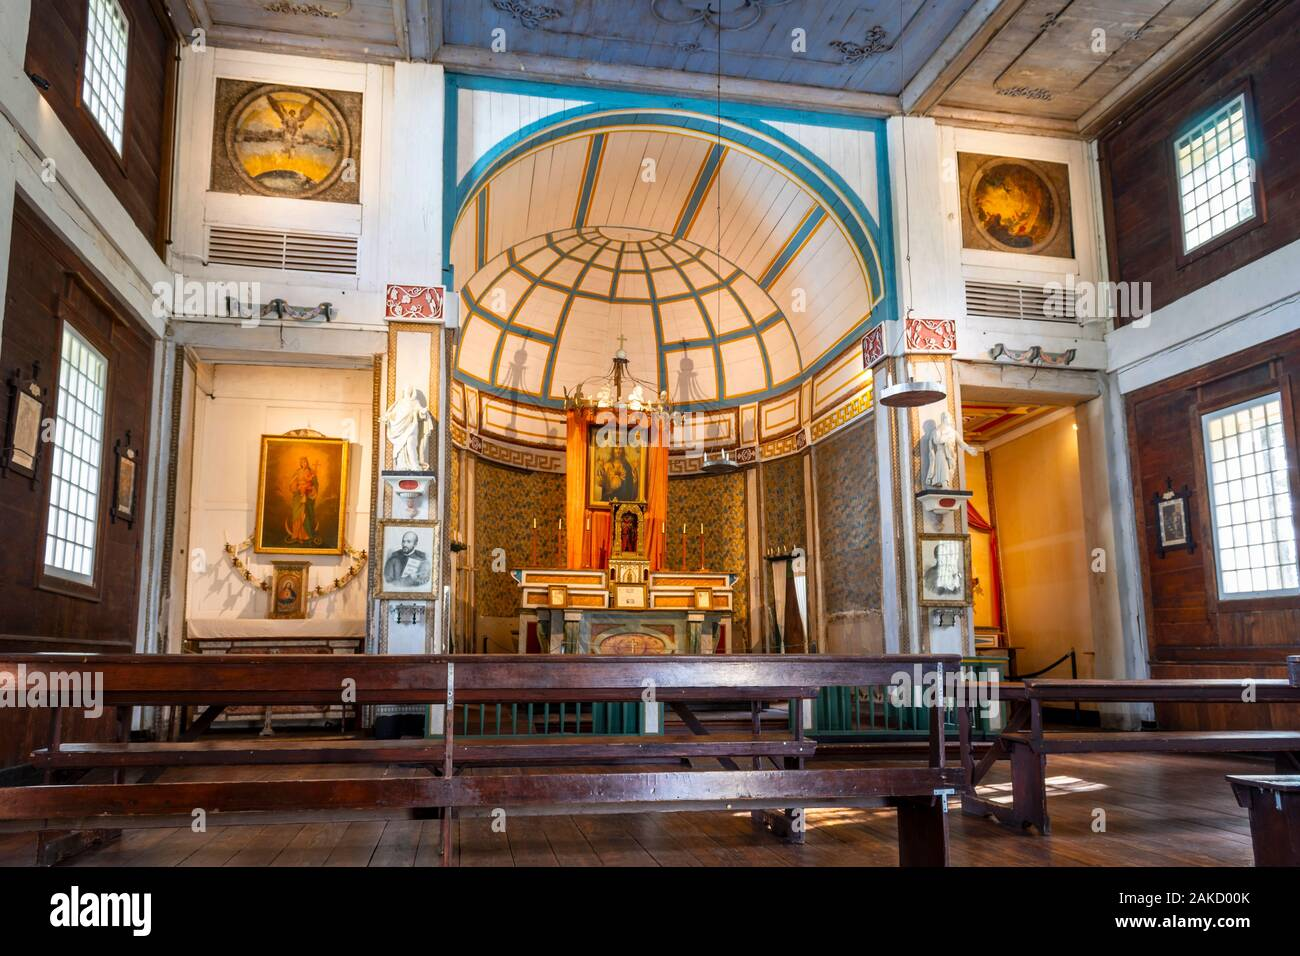 The interior main altar of the Jesuit mission at Cataldo, Idaho, in the Silver Valley, the oldest building in Idaho built in 1850. Stock Photo